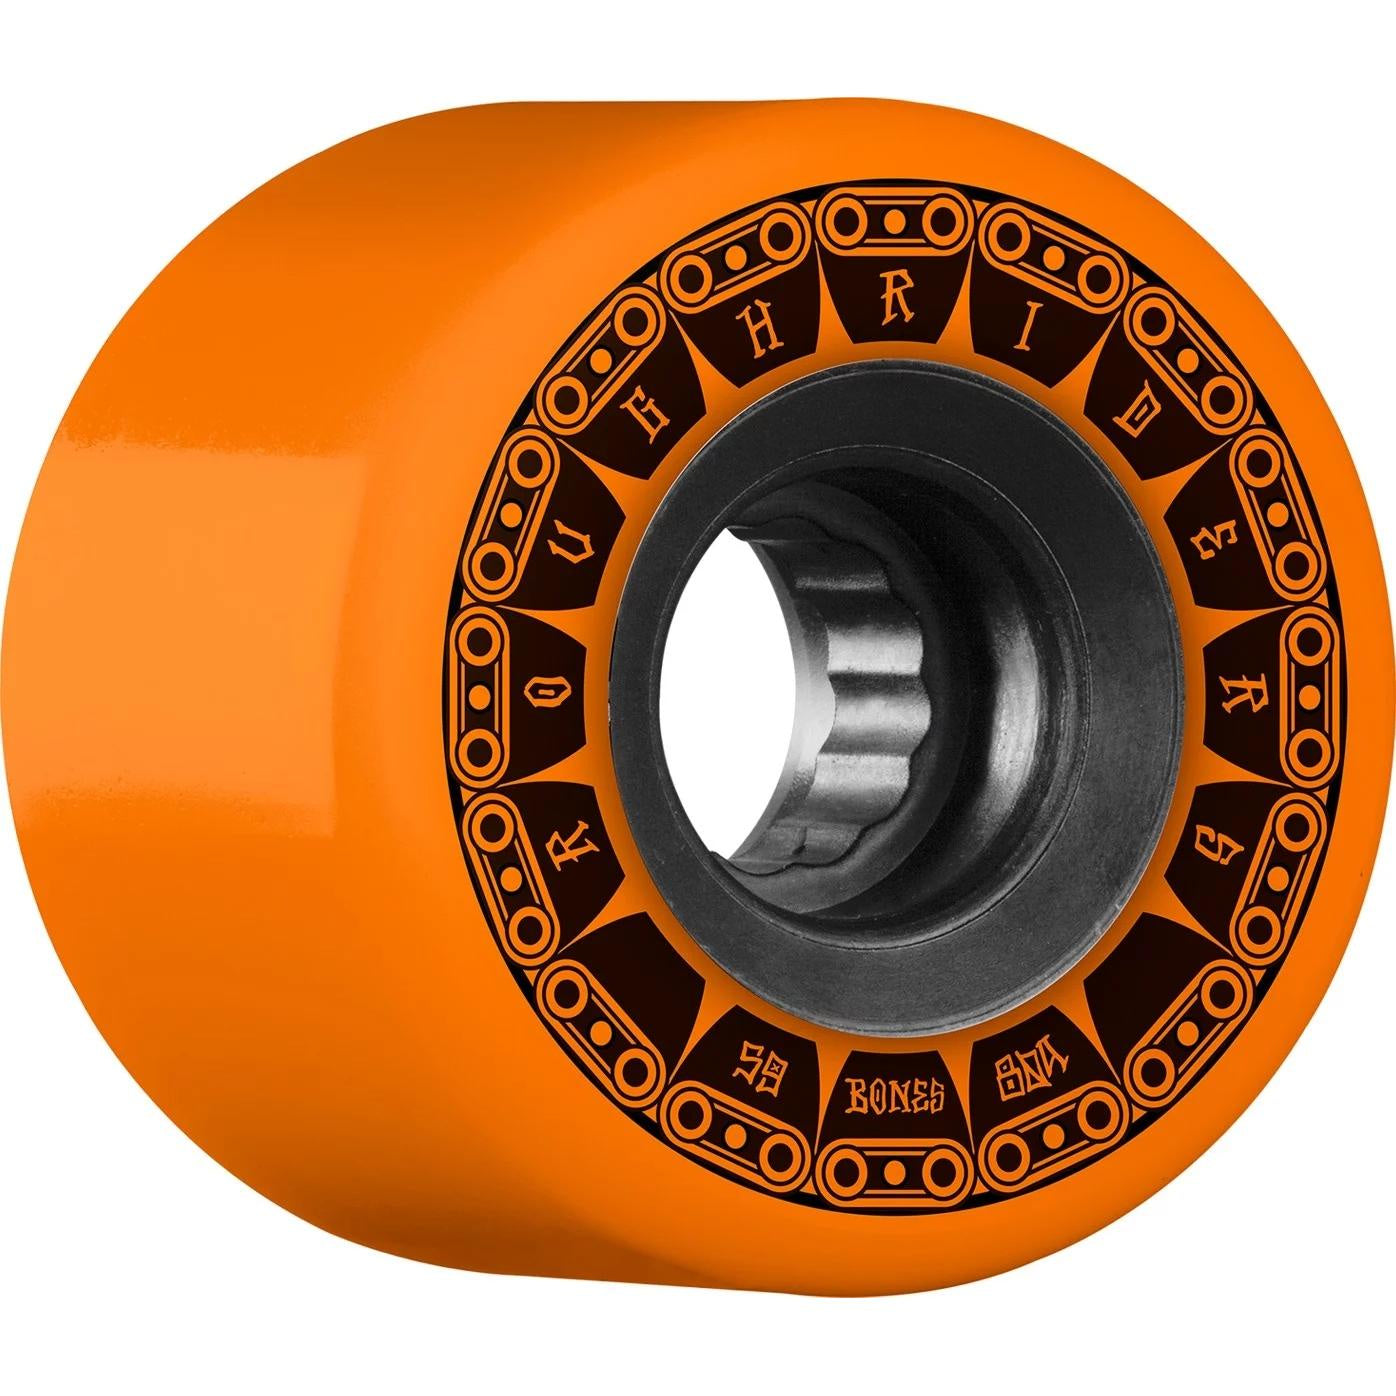 Bones Rough Rider Tank 59mm Orange